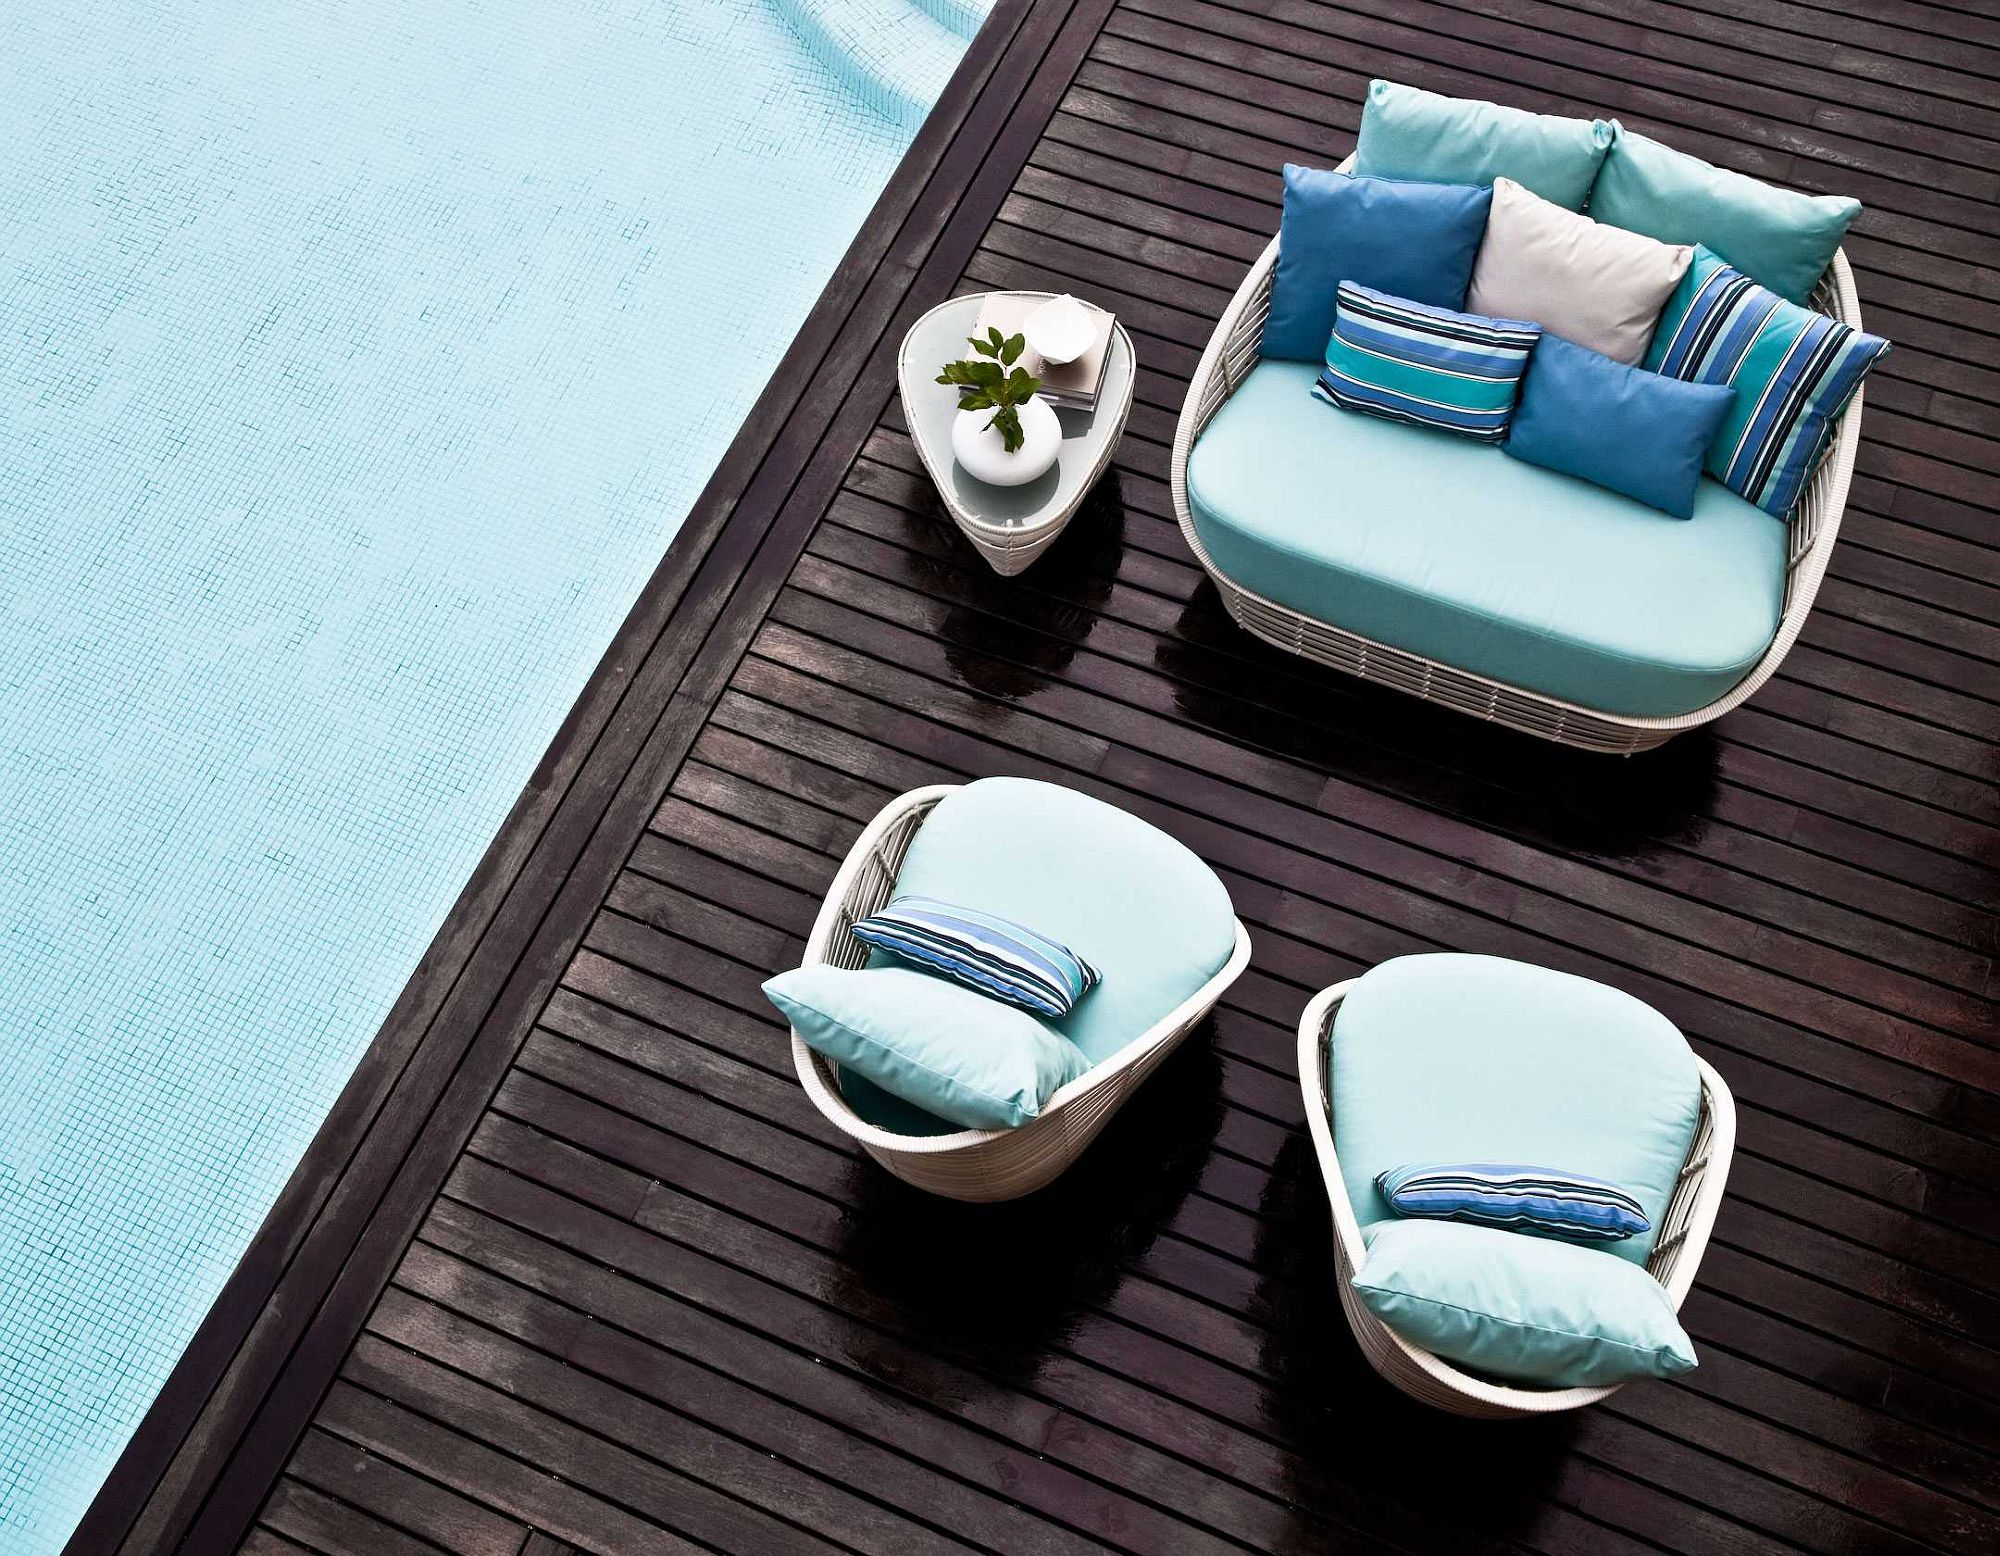 Breezy and modern Oasis lounge chair on the pool deck